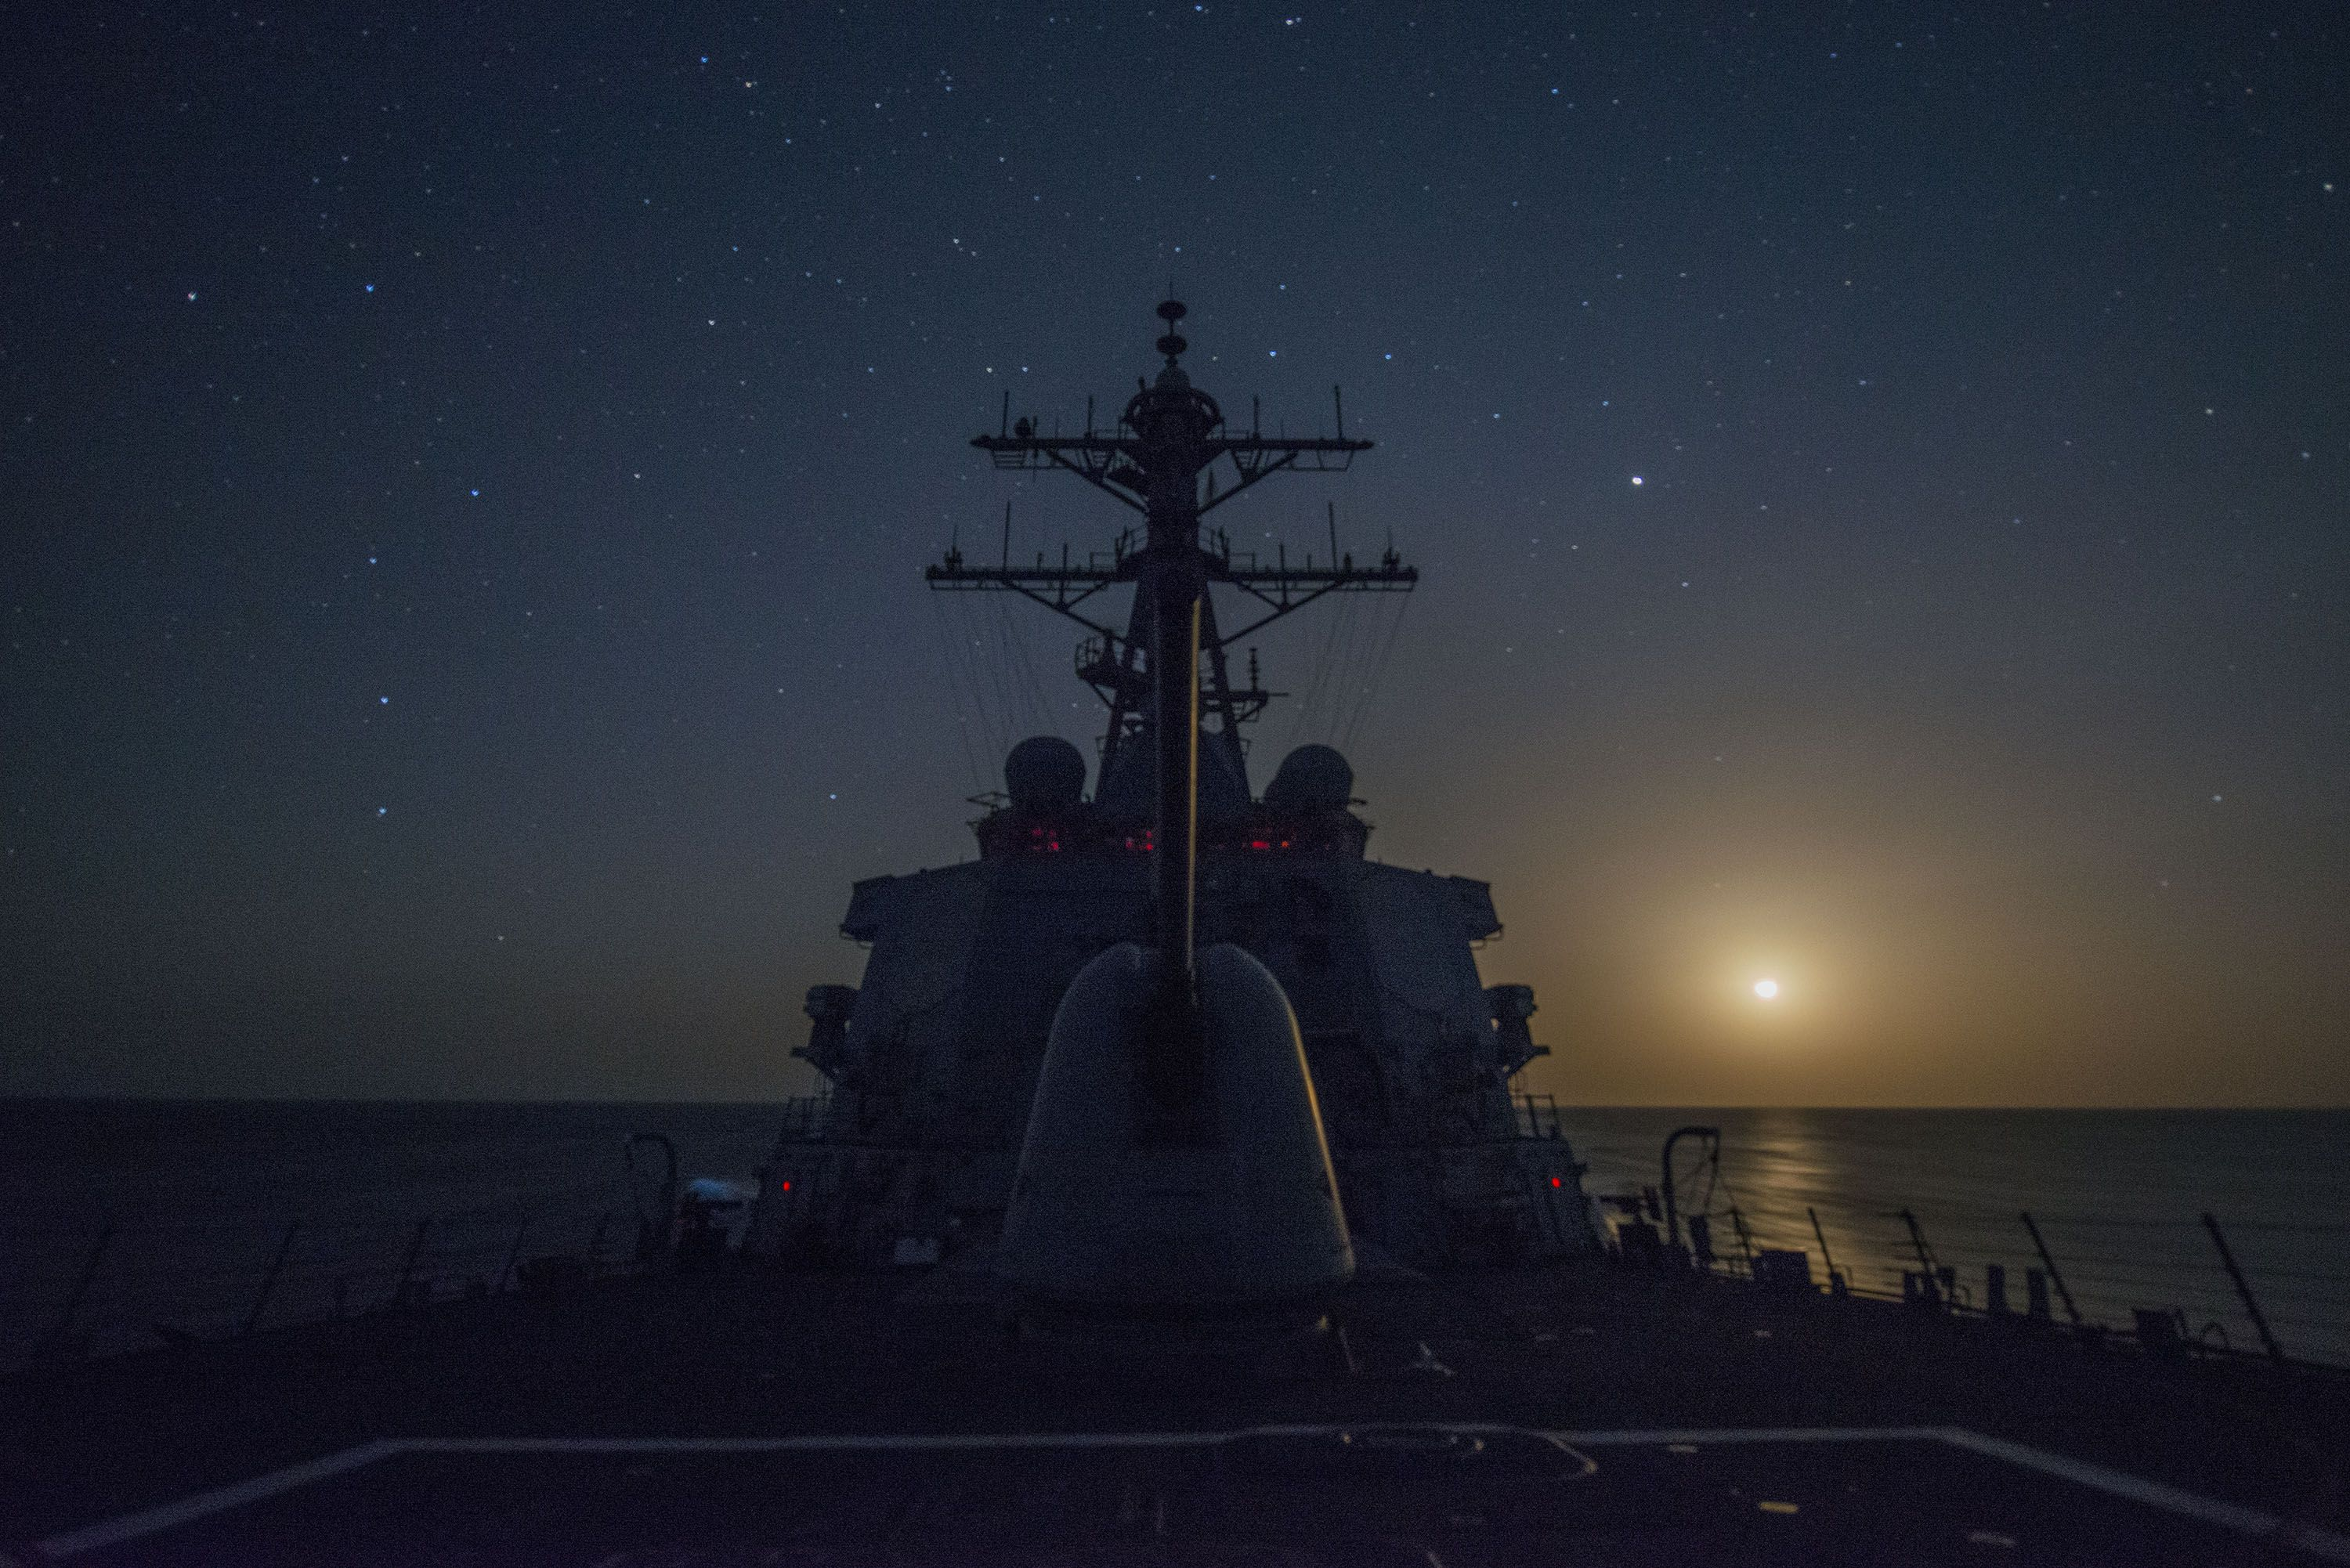 INDIAN OCEAN (Jan. 30, 2016) Guided-missile destroyer USS Gonzalez (DDG 66) transits the Indian Ocean. Gonzalez is deployed as part of the Harry S. Truman Carrier Strike Group, supporting maritime security operations and theater security cooperation efforts in the U.S. 5th Fleet area of operations. (U.S. Navy photo by Mass Communication Specialist 3rd Class Pasquale Sena/Released)